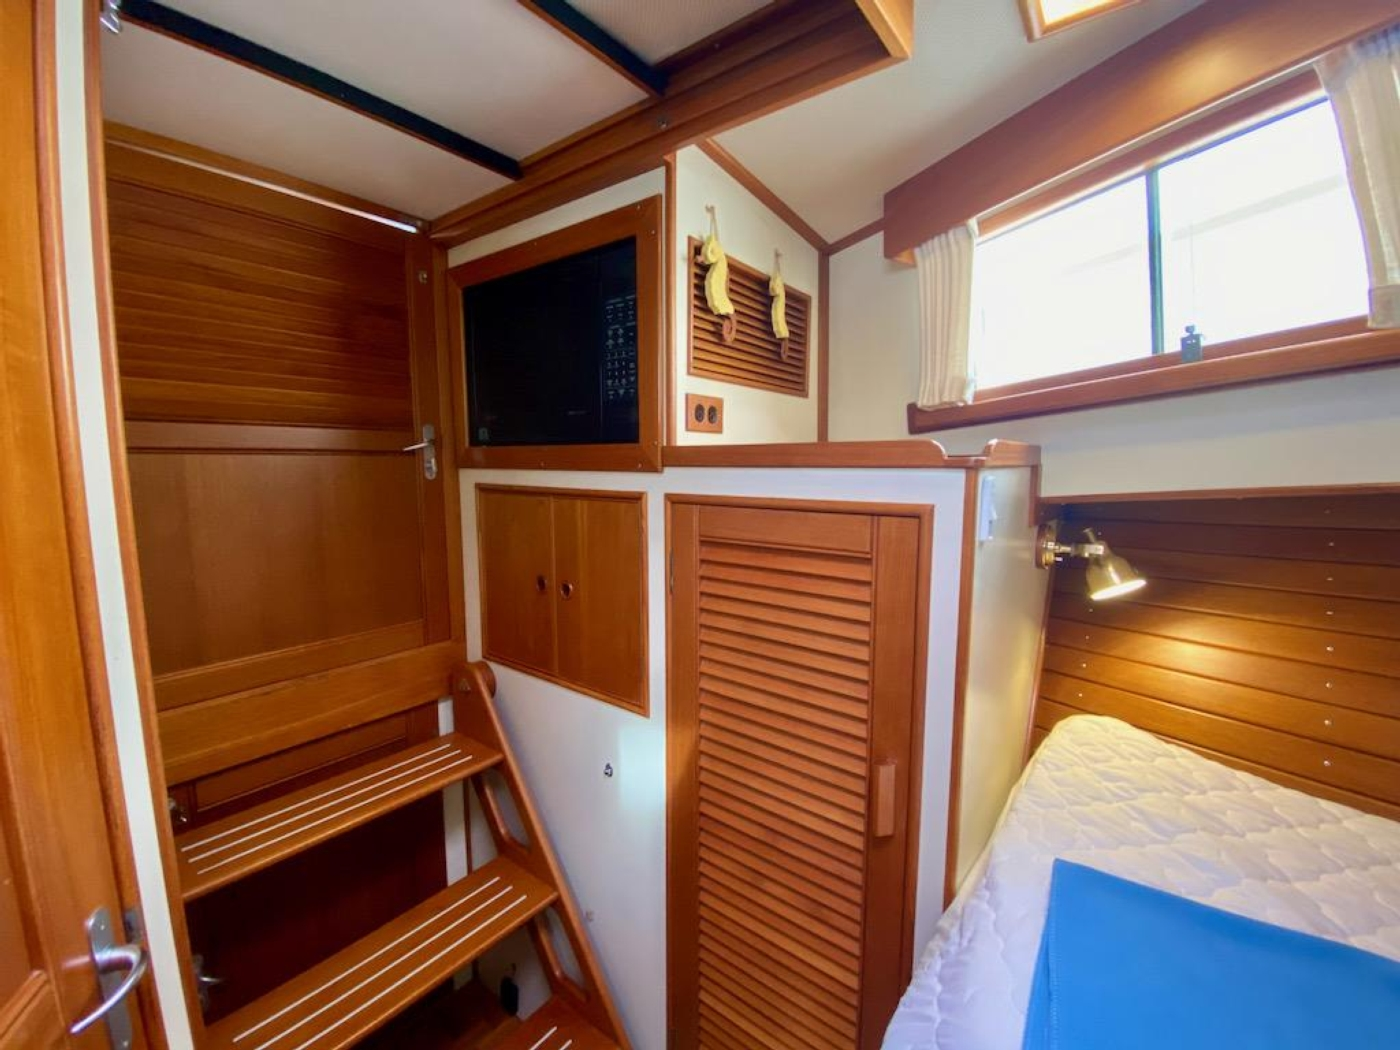 1998 Grand Banks 42 Classic, Fwd guest cabin storage 2